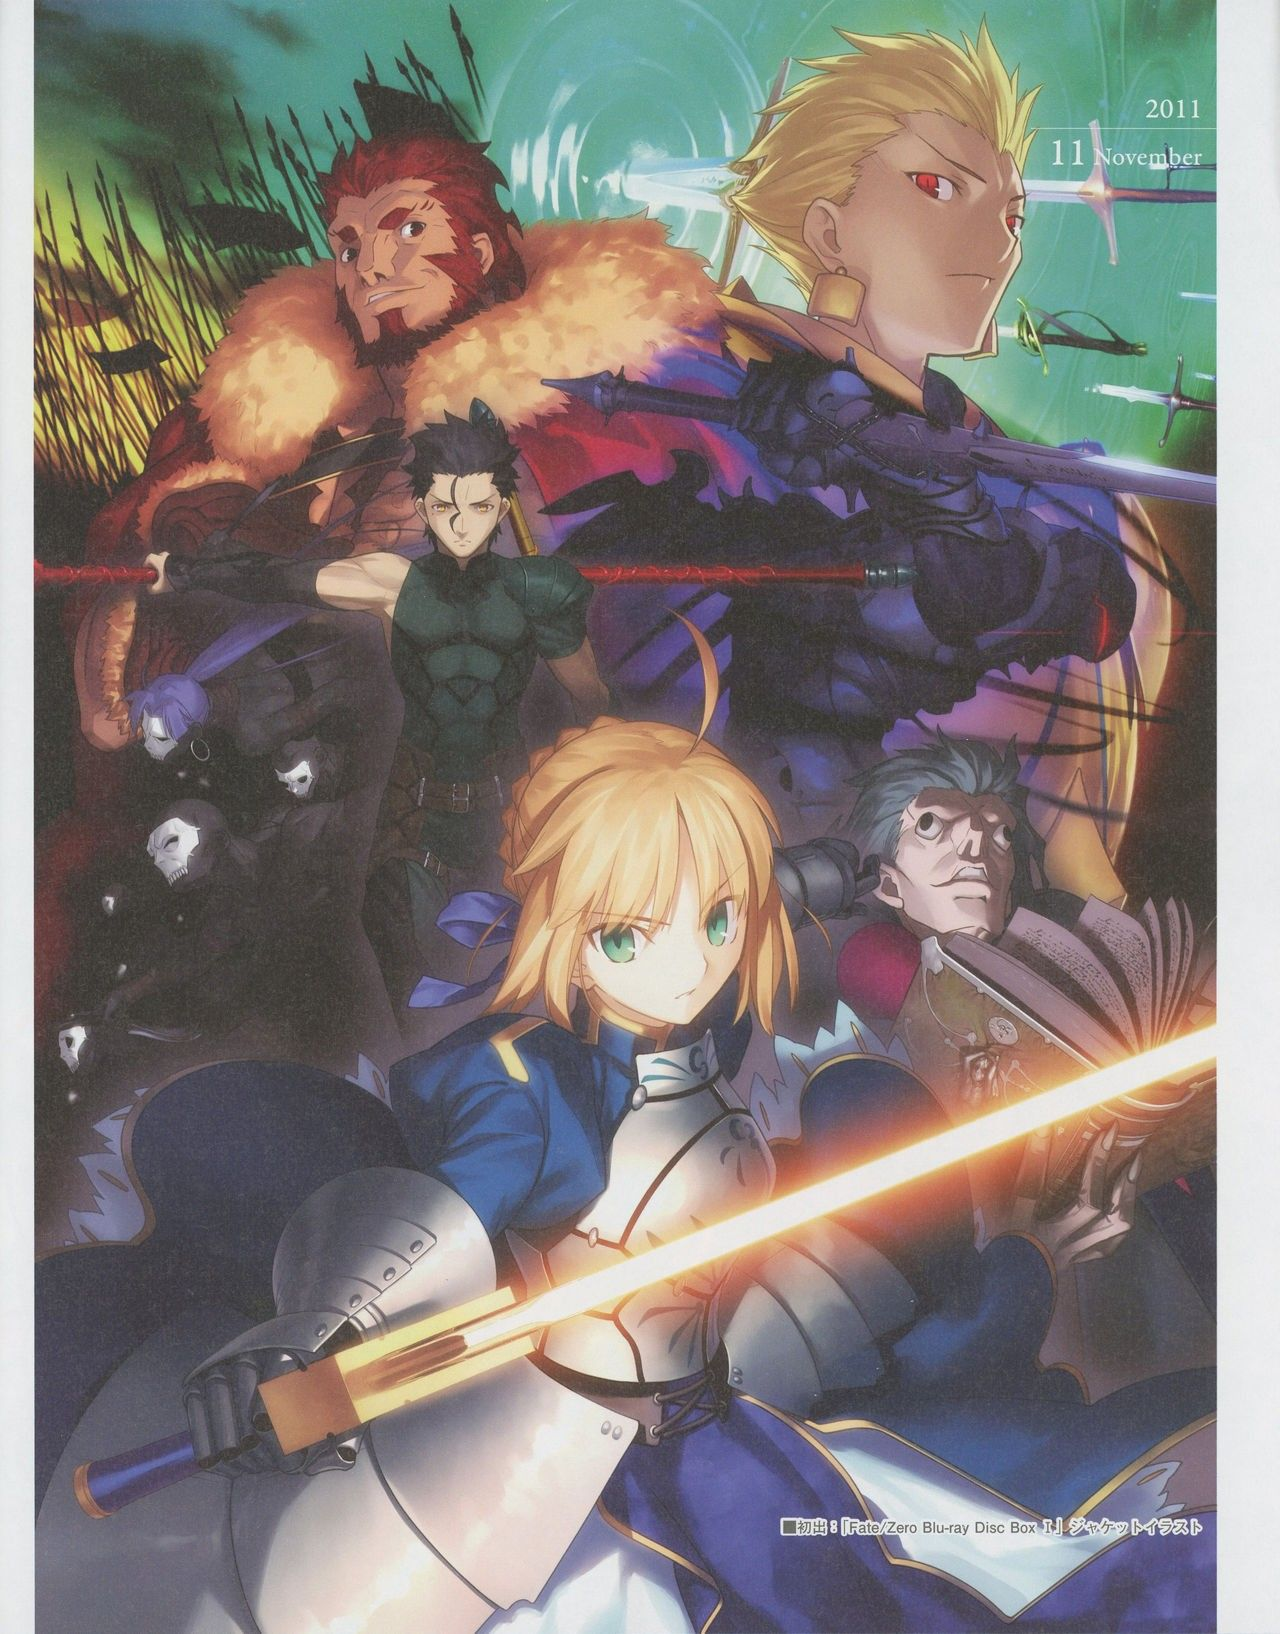 Fate stay night anime image by Anime Picture House on Fate